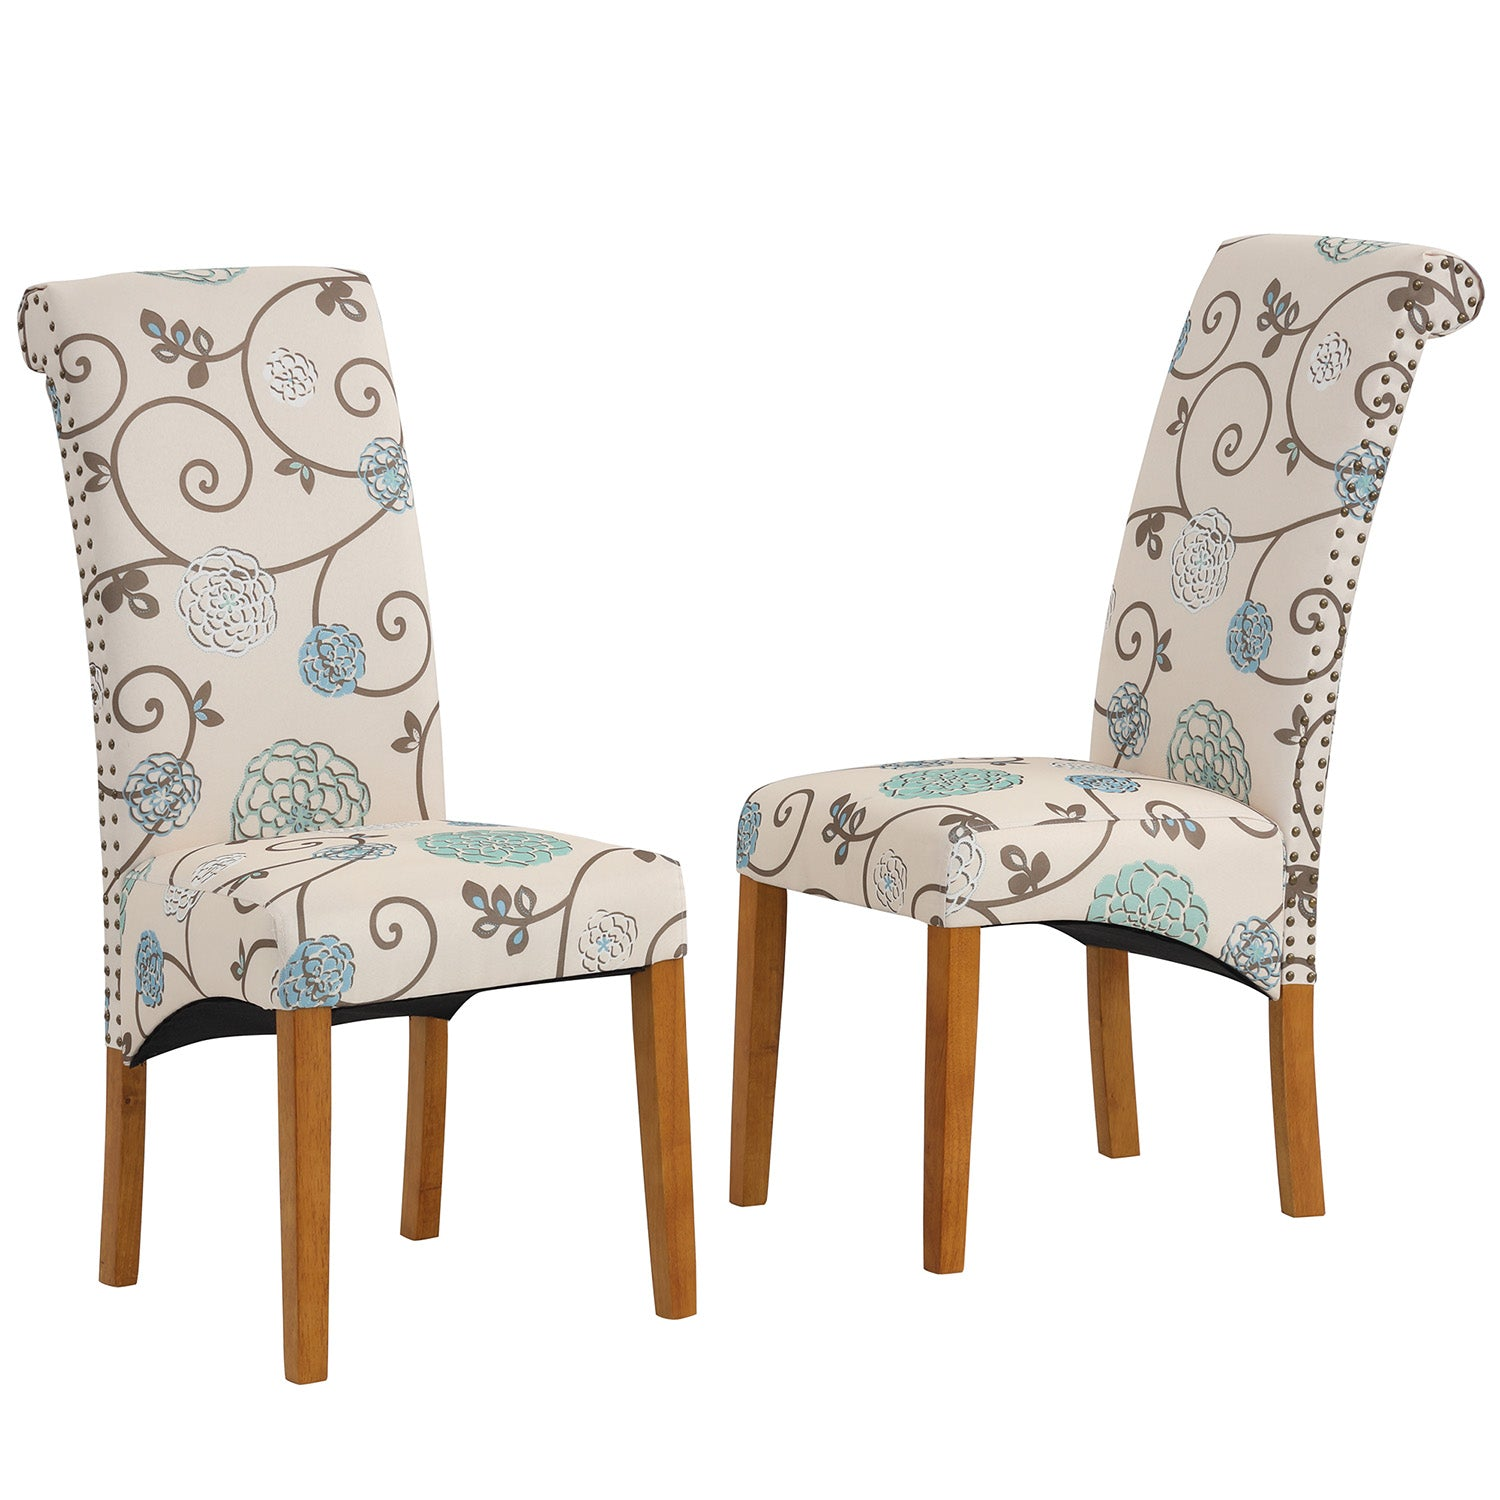 Saddle Brown Dining Chair Set Fabric Padded Side Chair with Solid Wood Legs Nailed Trim Living Room BH486200